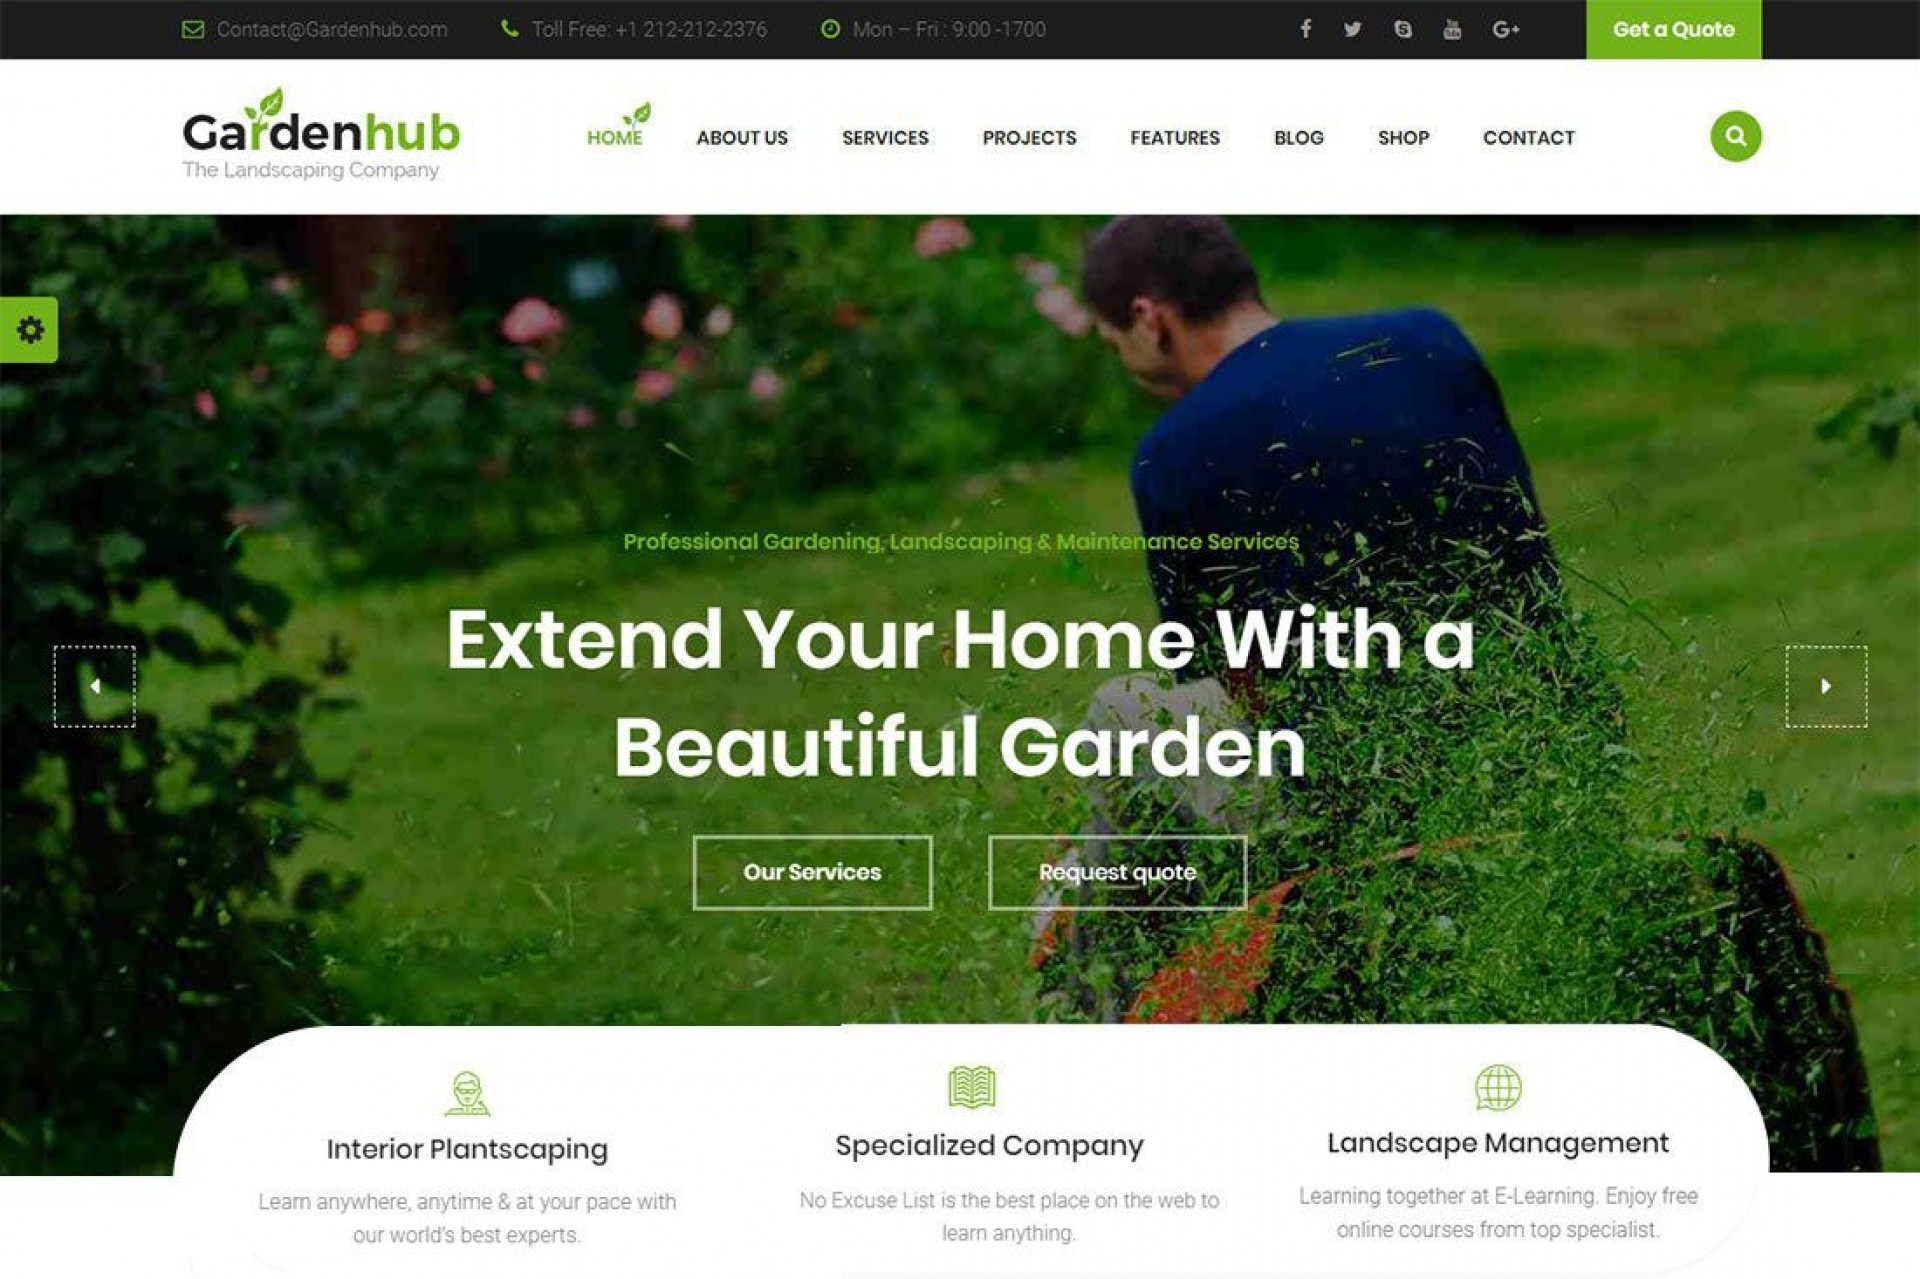 003 Amazing Lawn Care Website Template Inspiration 1920